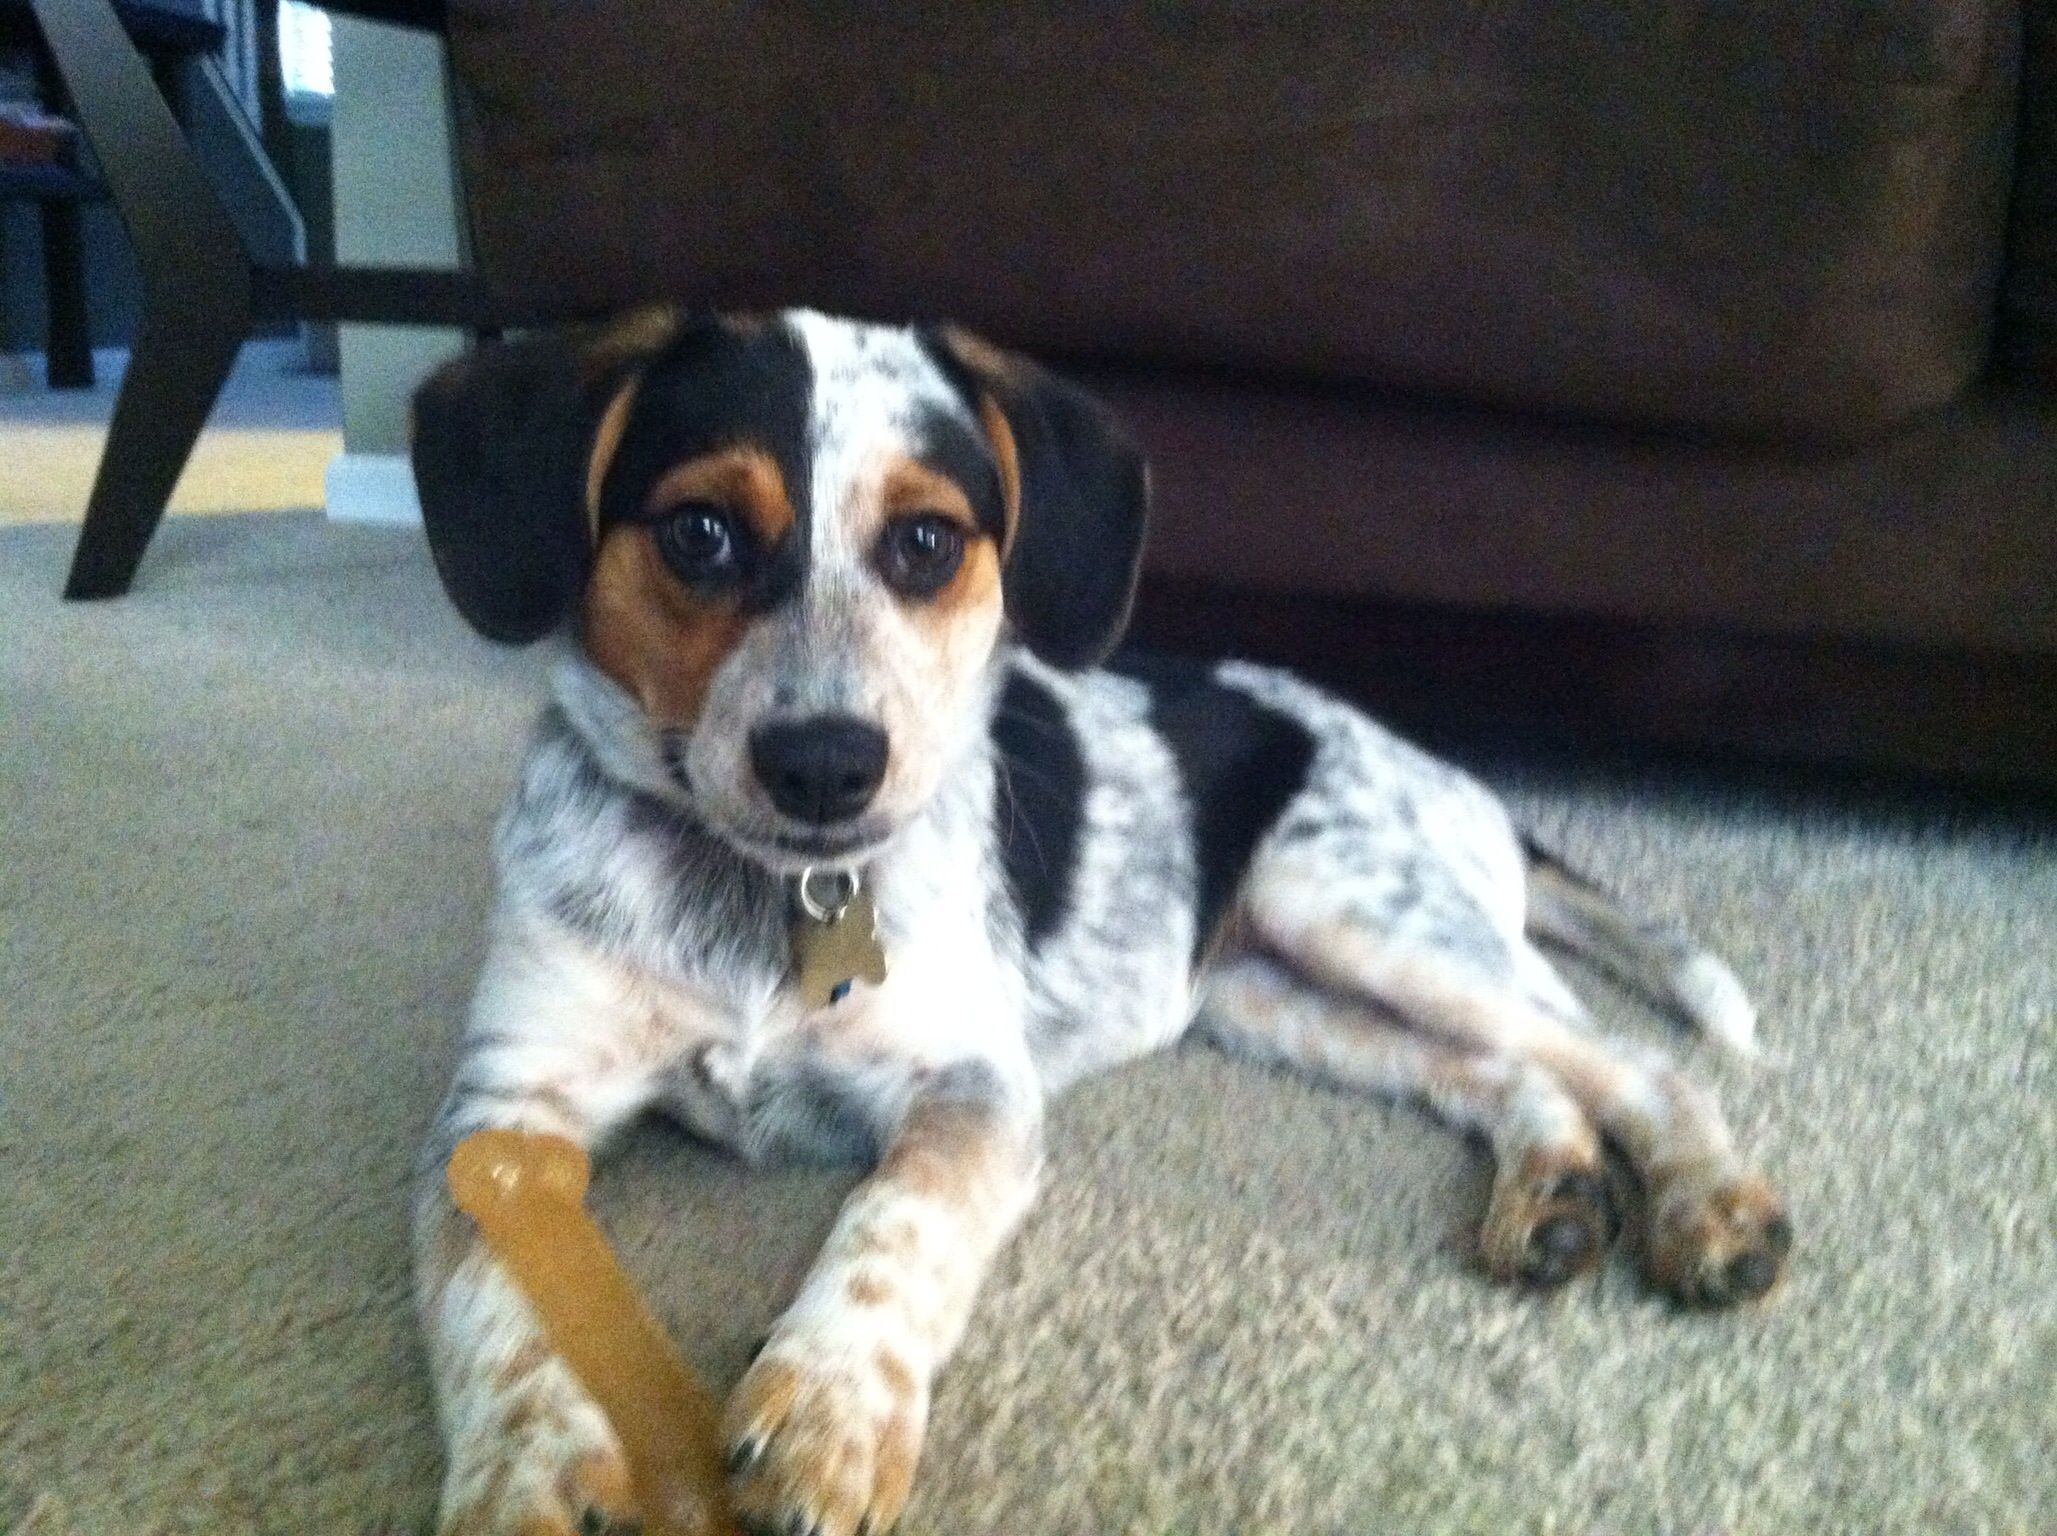 Blue Heeler Beagle Mix Puppies Images & Pictures - Becuo